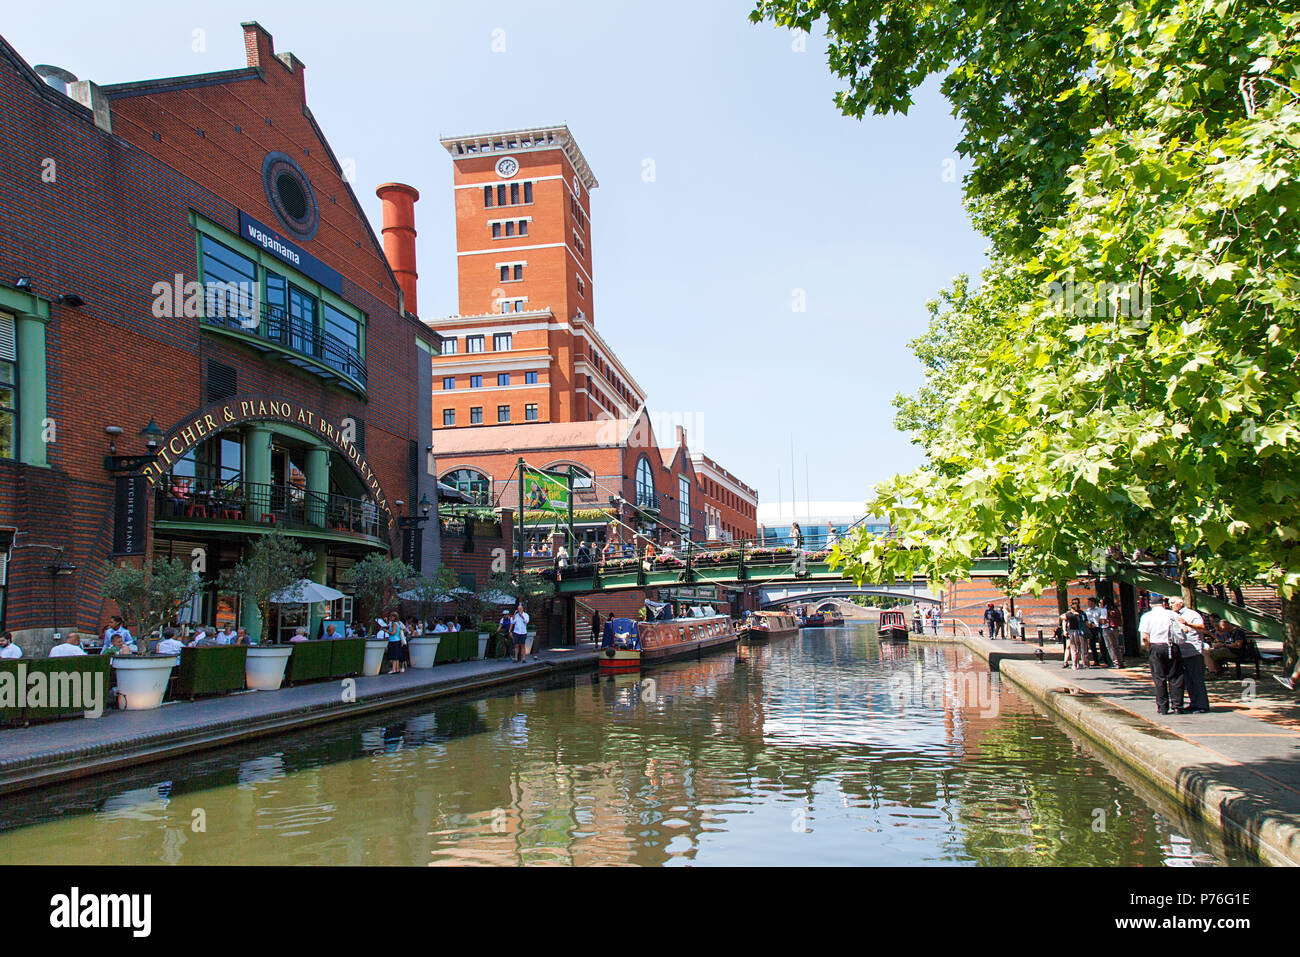 Birmingham, UK: June 29, 2018: The restored canal system in Birmingham is a national heritage landmark and where the Worcester and Birmingham meet. - Stock Image